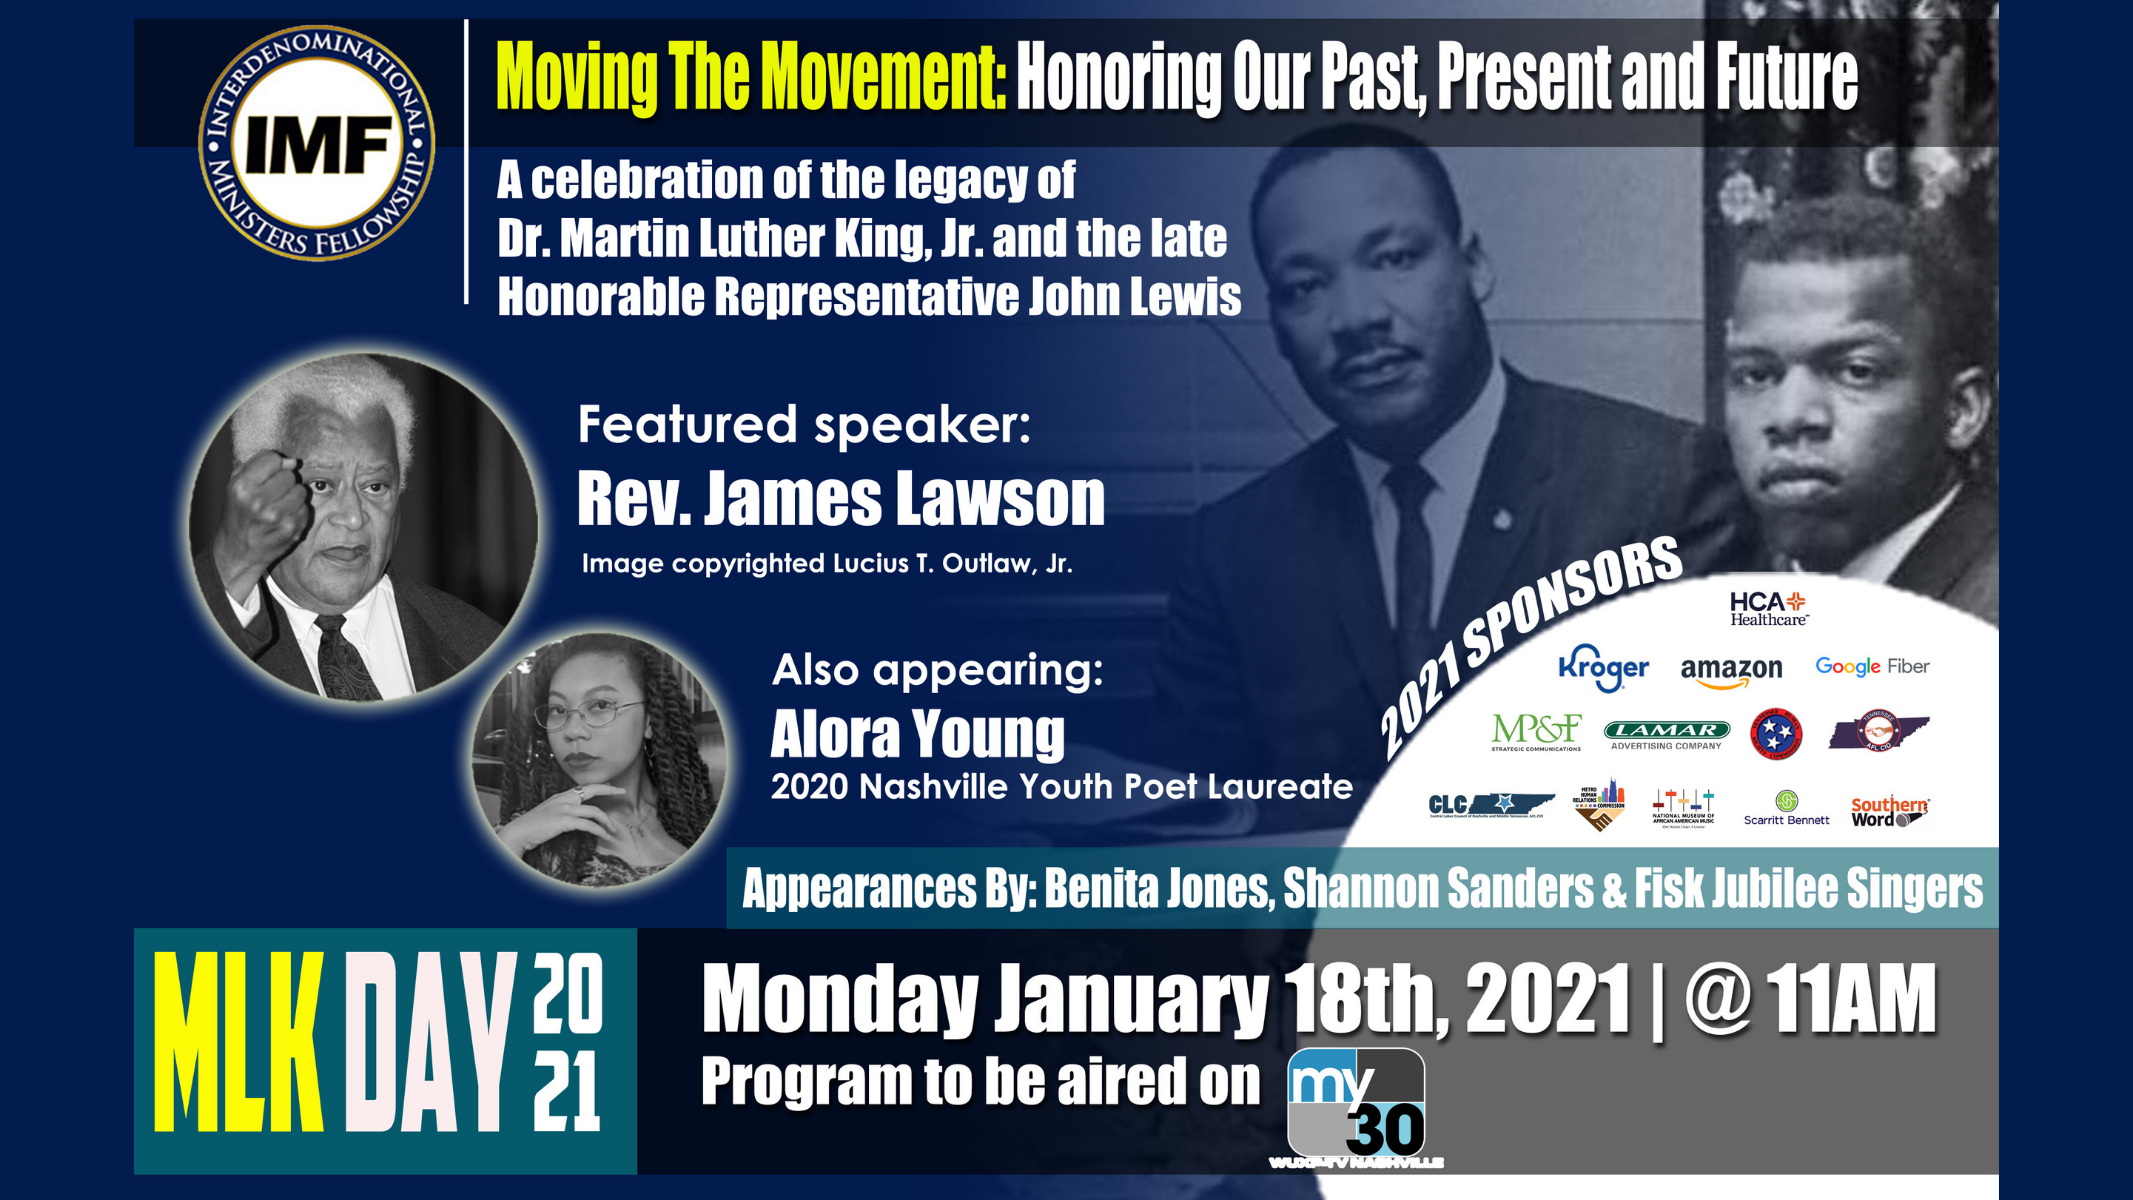 Moving the Movement: Honoring our Past, Present, and Future